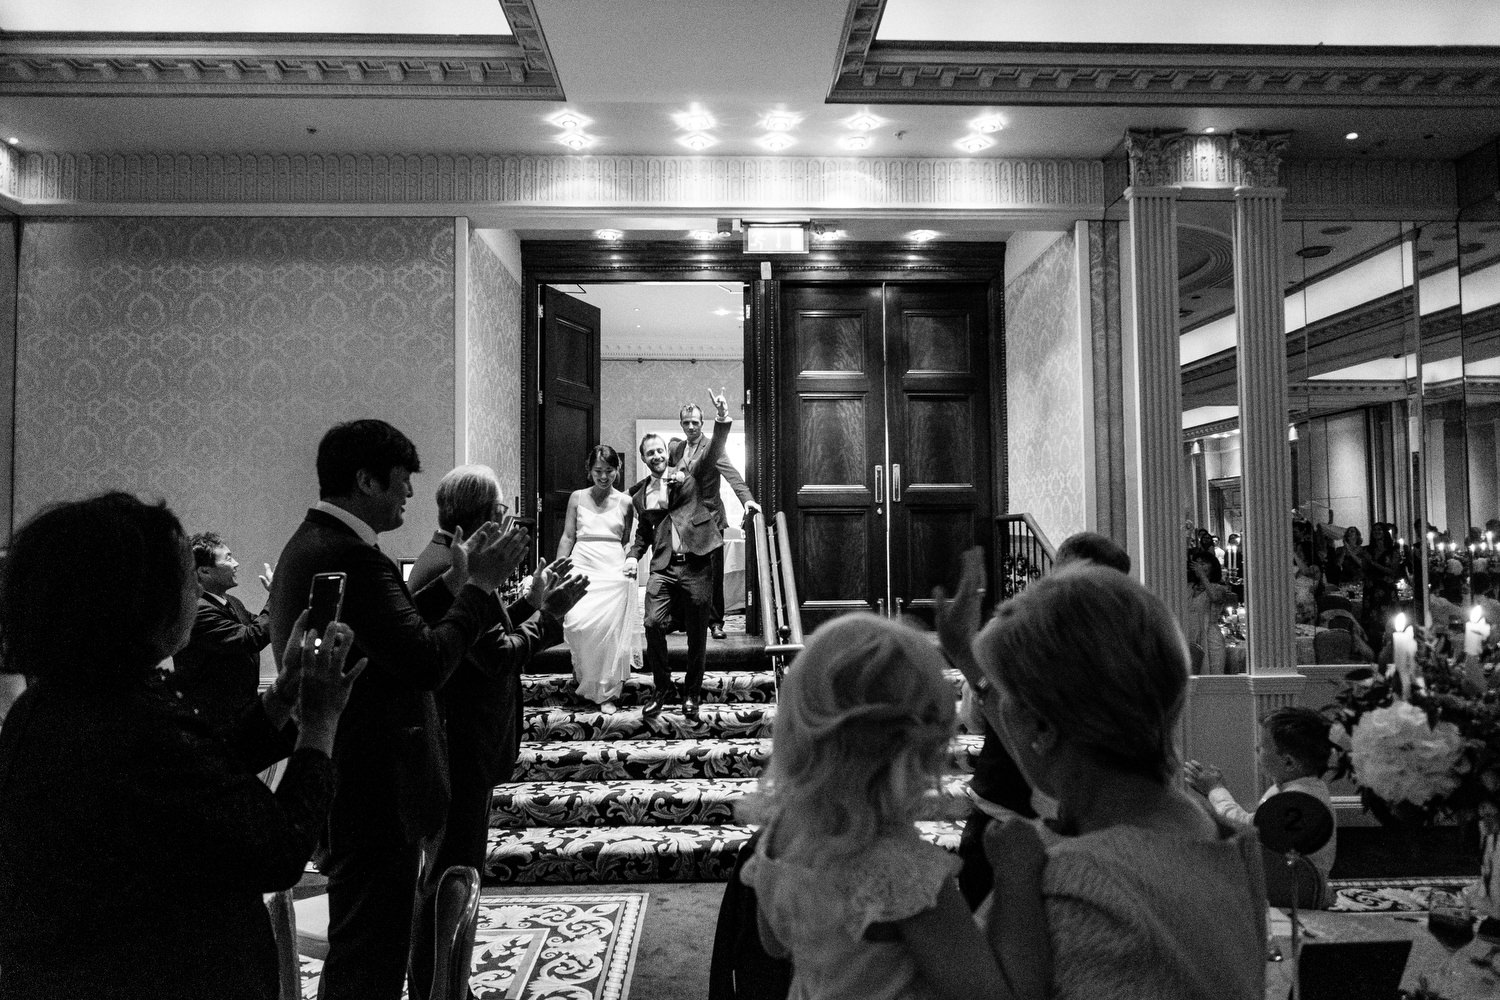 dmp0549_photographer_wedding_dublin_david_mcclelland_candid_photography_fujifilm_shelbourne_reception_documentary